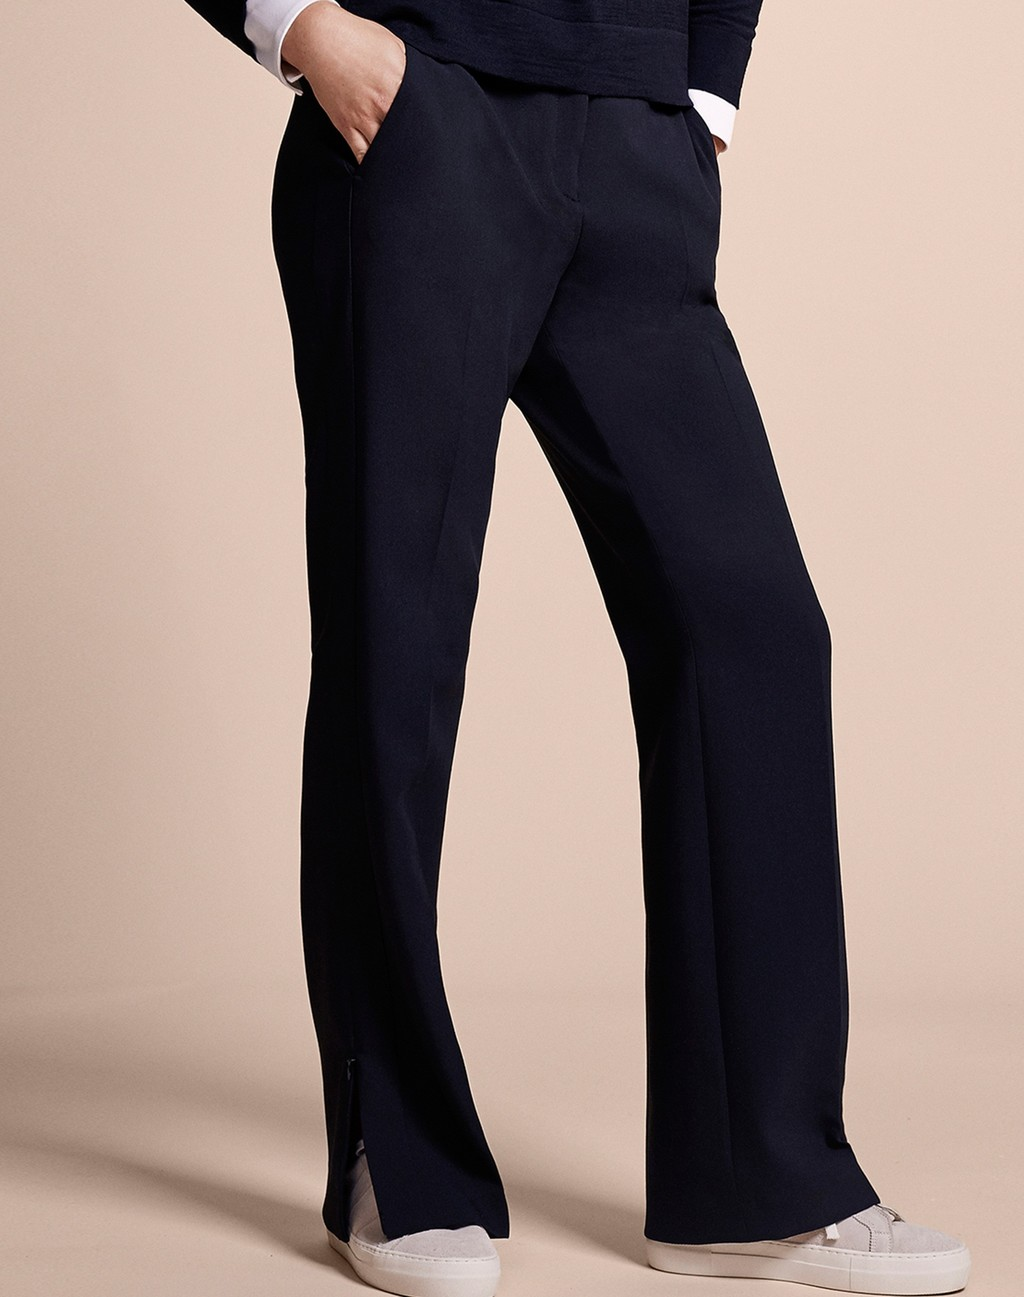 Side Stripe Trouser Black - length: standard; pattern: pinstripe; waist: mid/regular rise; predominant colour: navy; fibres: polyester/polyamide - 100%; texture group: crepes; fit: straight leg; pattern type: fabric; style: standard; occasions: creative work; pattern size: light/subtle (bottom); season: a/w 2015; wardrobe: highlight